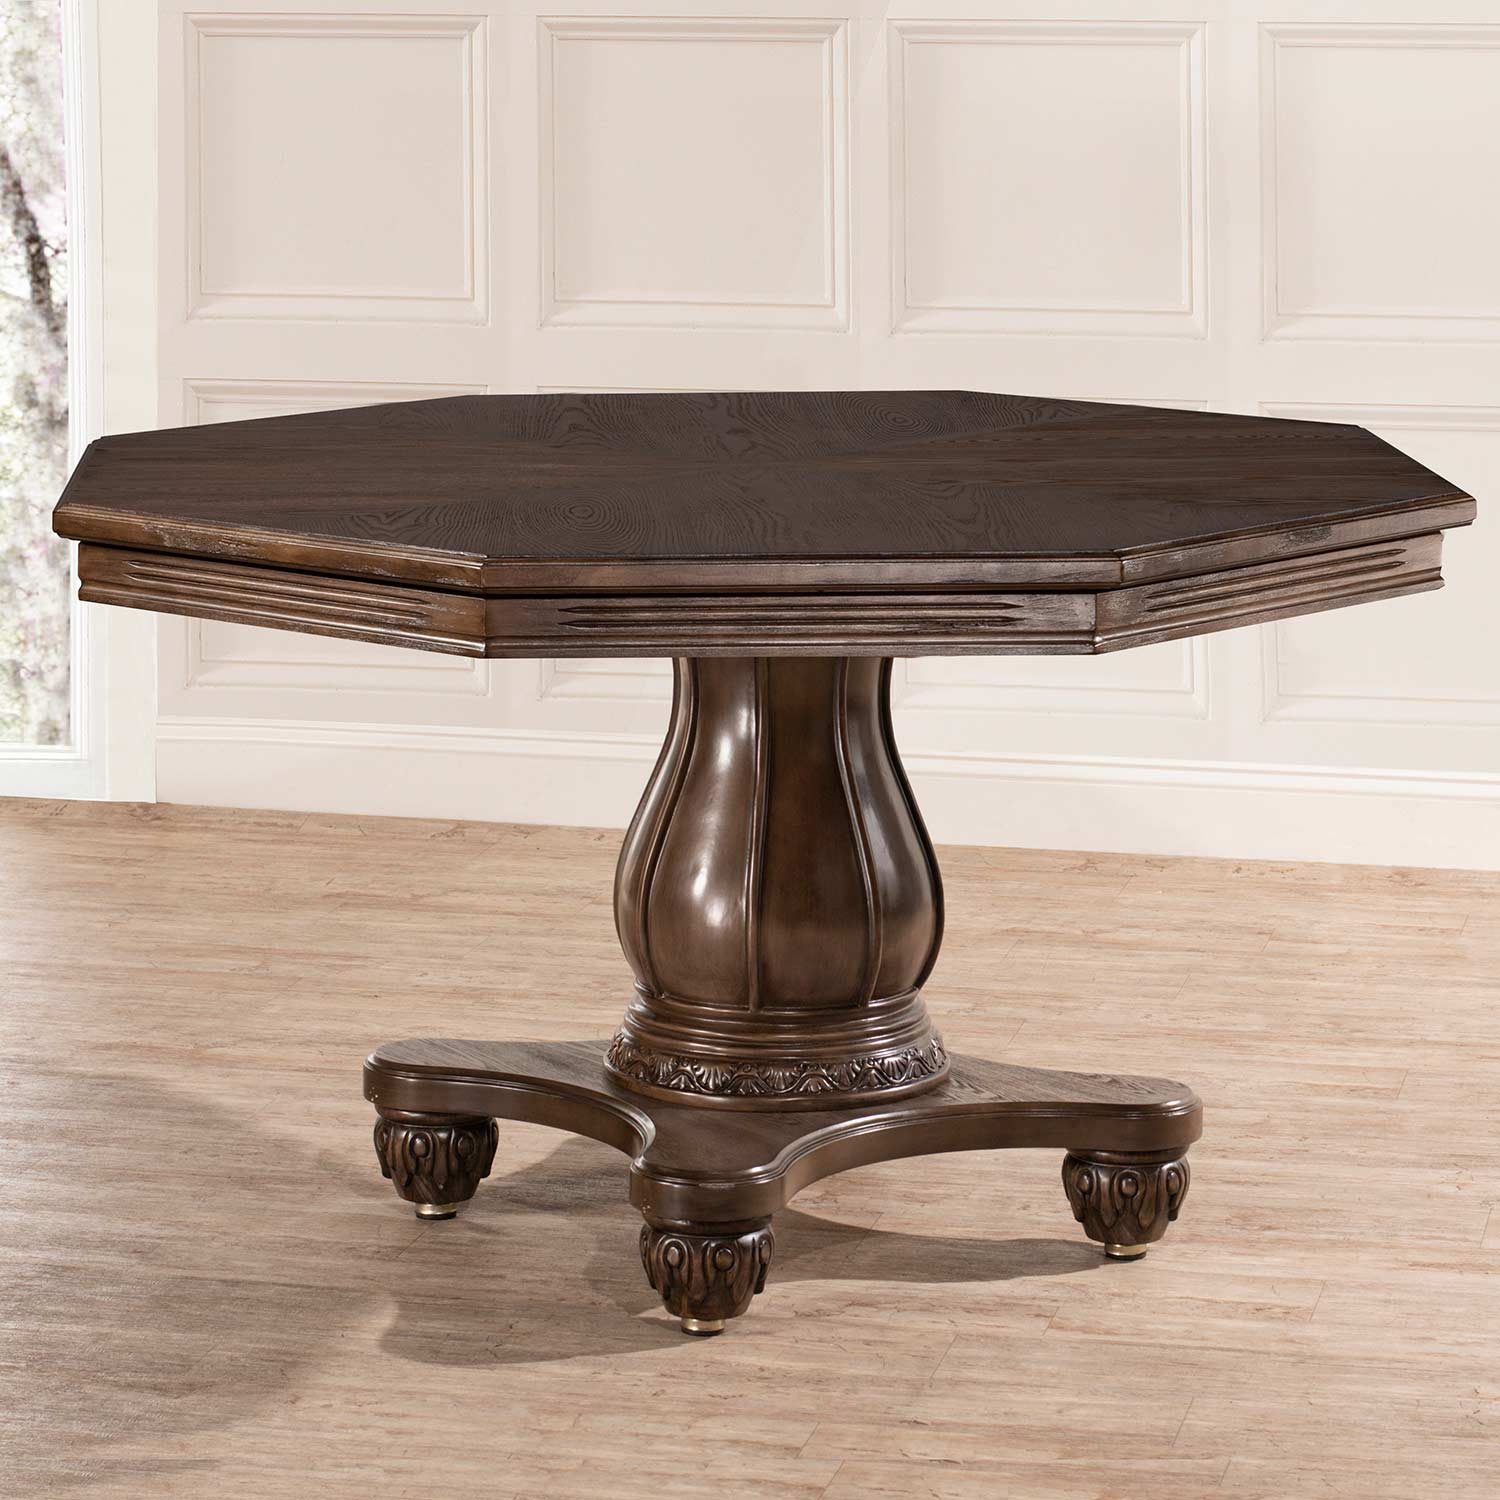 Hillsdale Kingston Freeport Wood Octagonal Table - Weathered Walnut